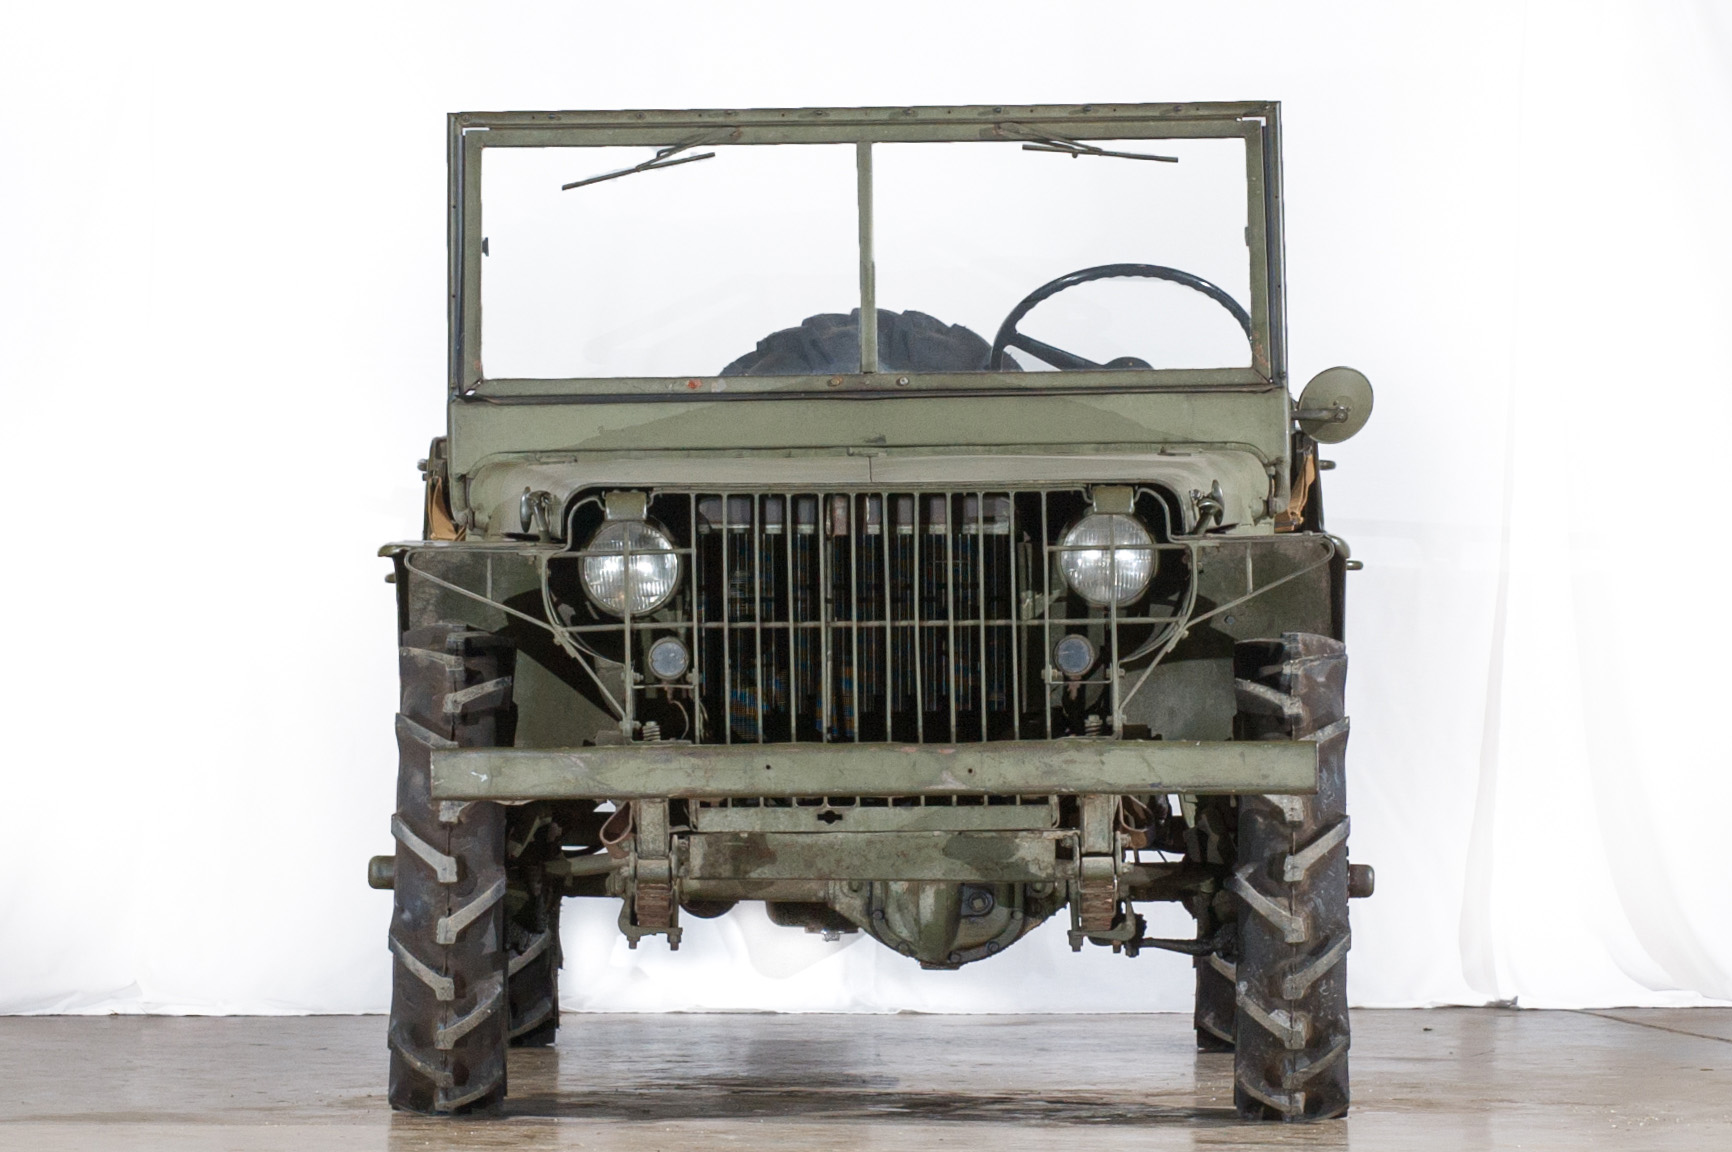 """The 1940 Ford Pilot Model GP-No. 1 Pygmy is the first of the """"jeeps"""" built to feature the now iconic flat grille design with incorporated headlights and vertical slats. This design was later adopted by Willys-Overland Motors, Inc. in the final WWII production """"jeep,"""" the MB in 1941. (Photo courtesy of the U.S. Veterans Memorial Museum/John Omenski)"""